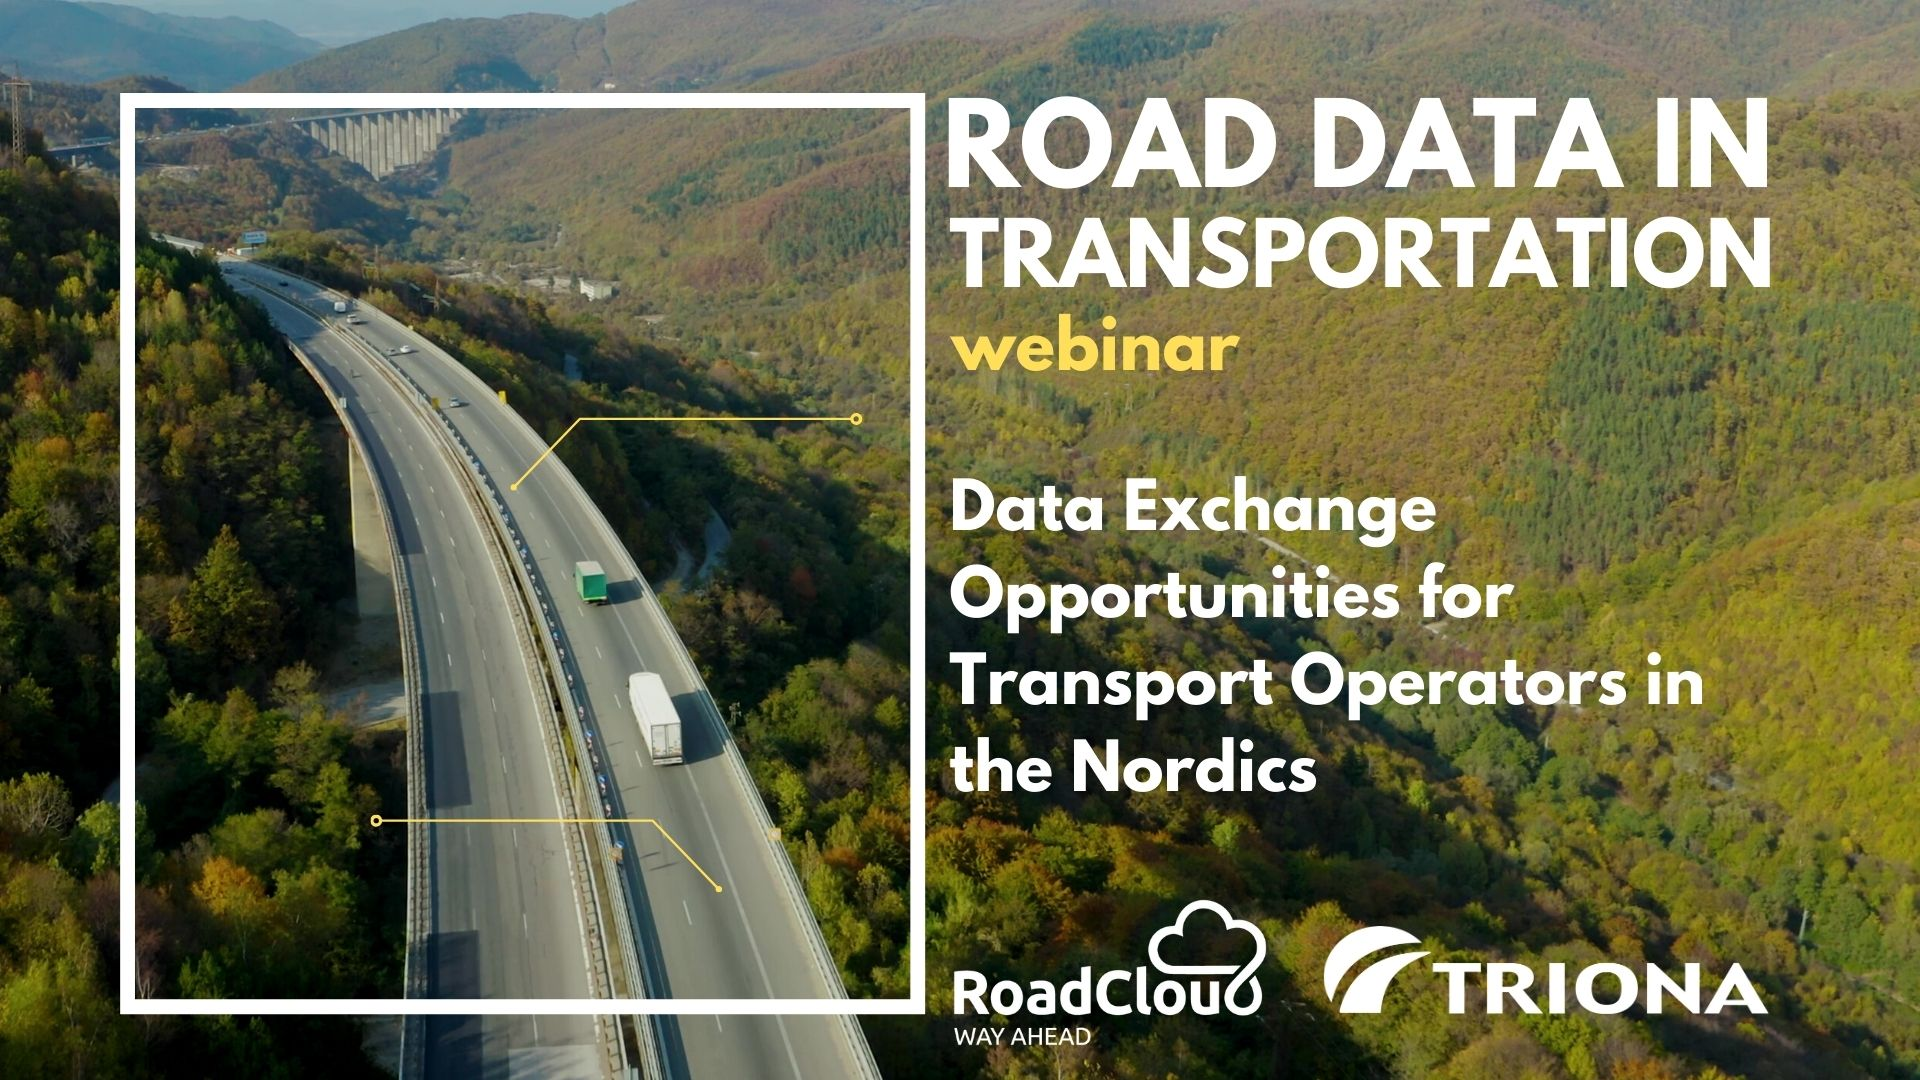 Data Exchange Opportunities for Transport Operators in the Nordics